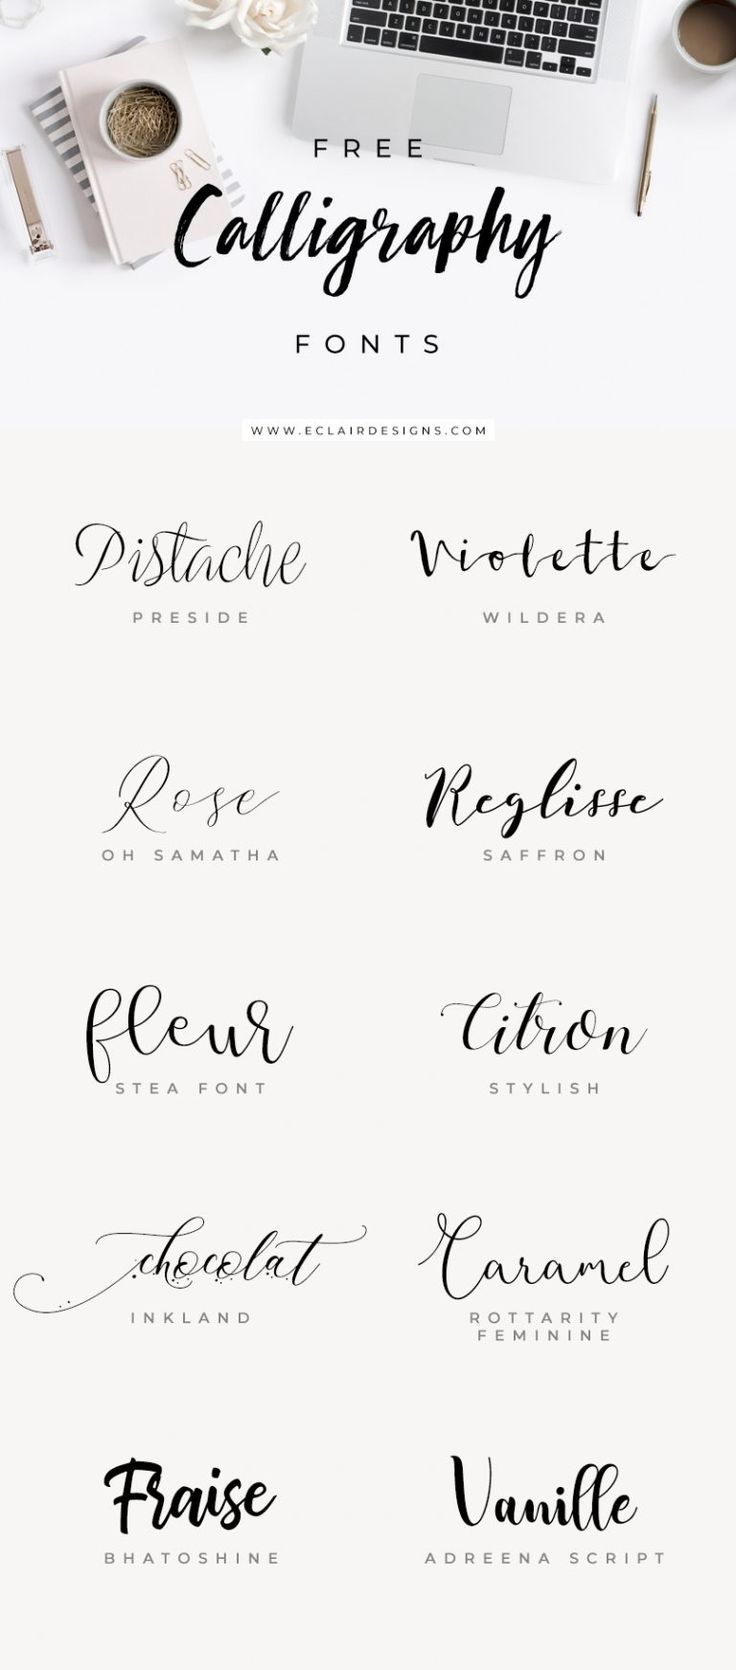 10 FREE CALLIGRAPHY FONTS | Cricut | Calligraphy fonts